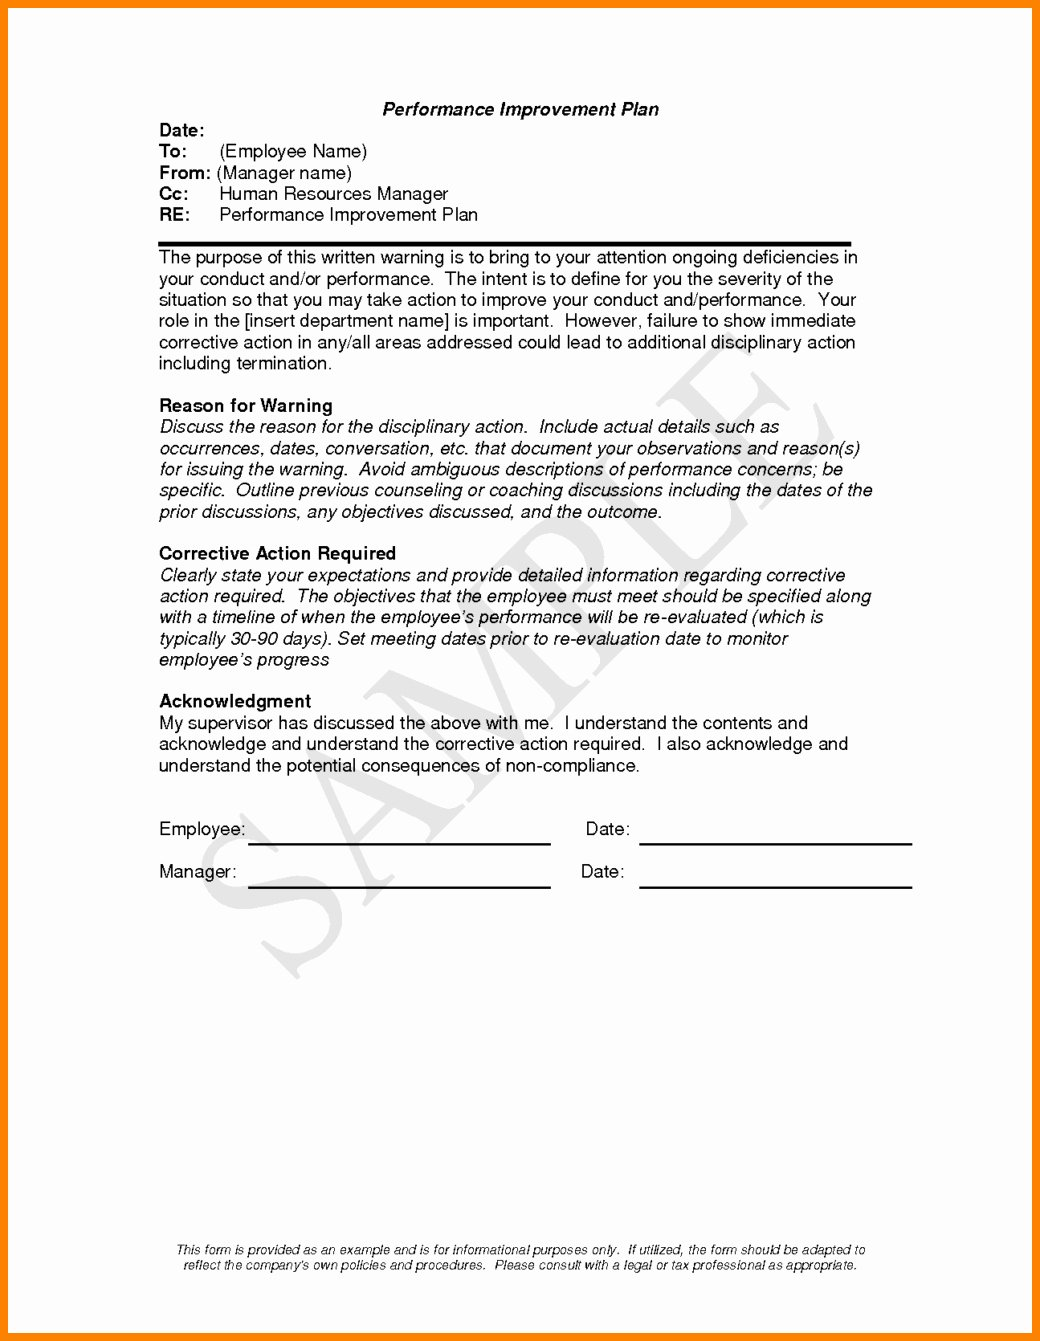 Sales Performance Improvement Plan Template Elegant Performance Improvement Plan Letter Template Examples